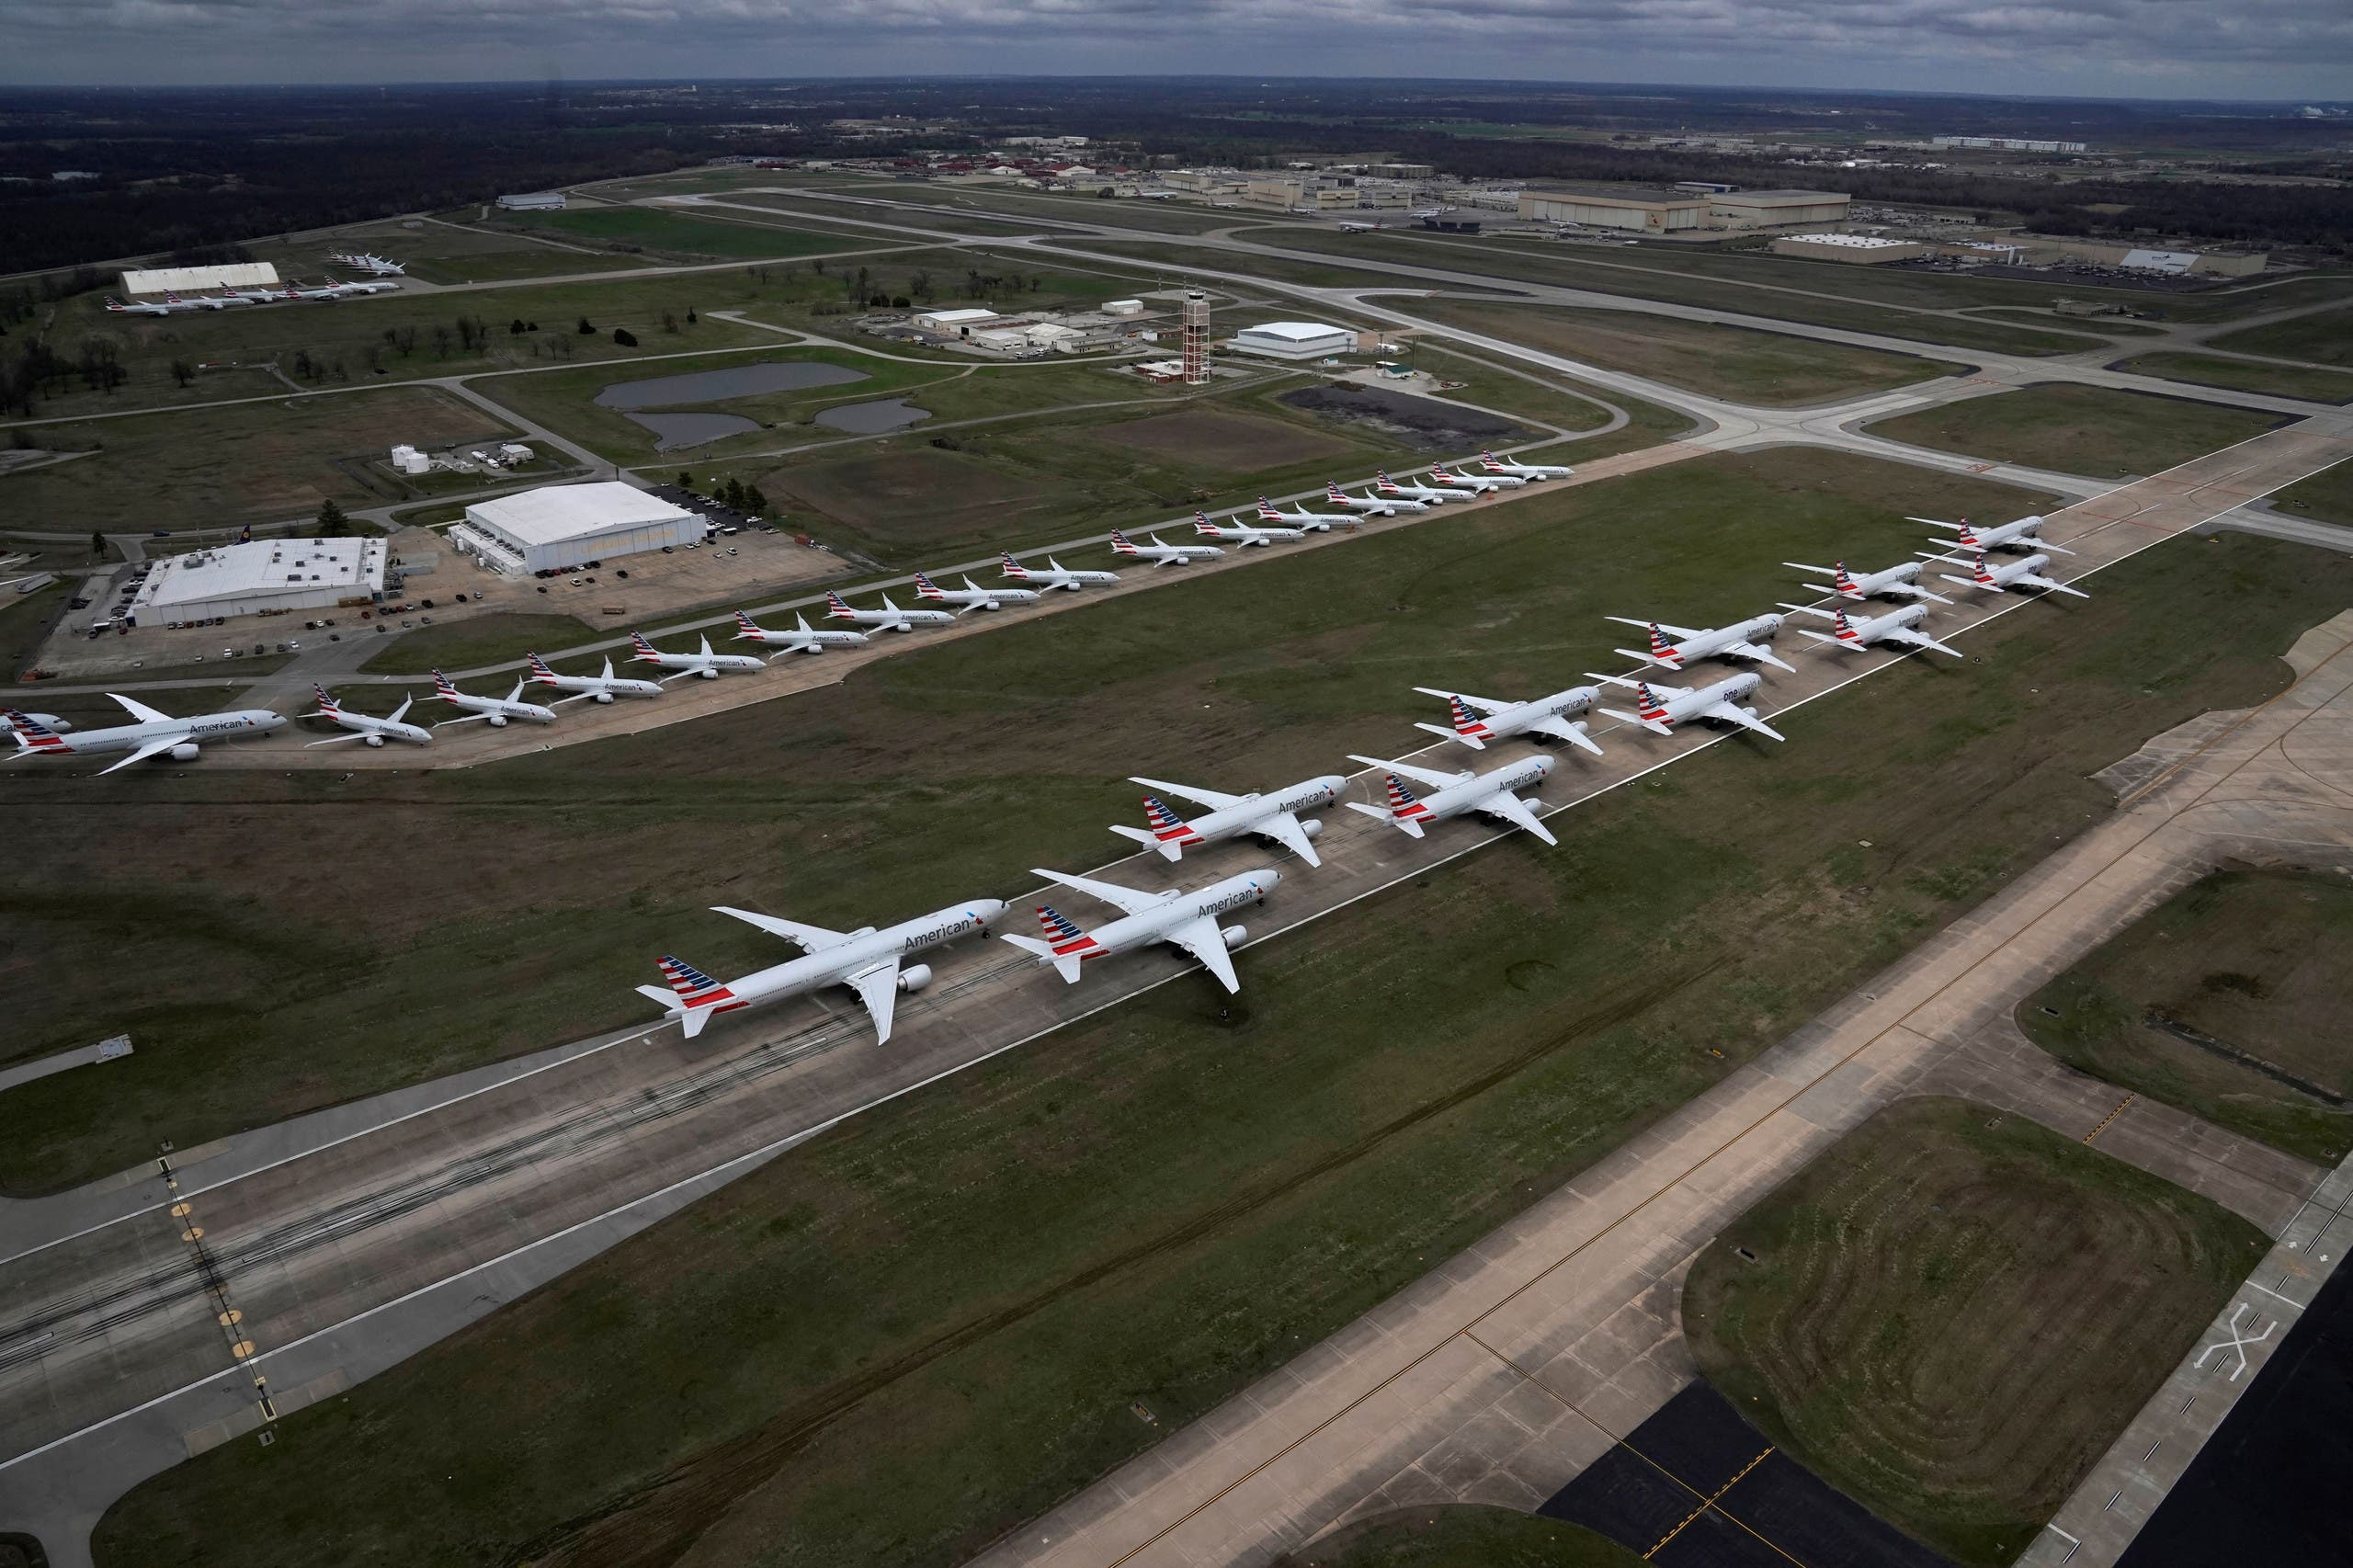 American Airlines planes sit crowded in Tulsa International Airport, Oklahoma, US. (File photo: Reuters)